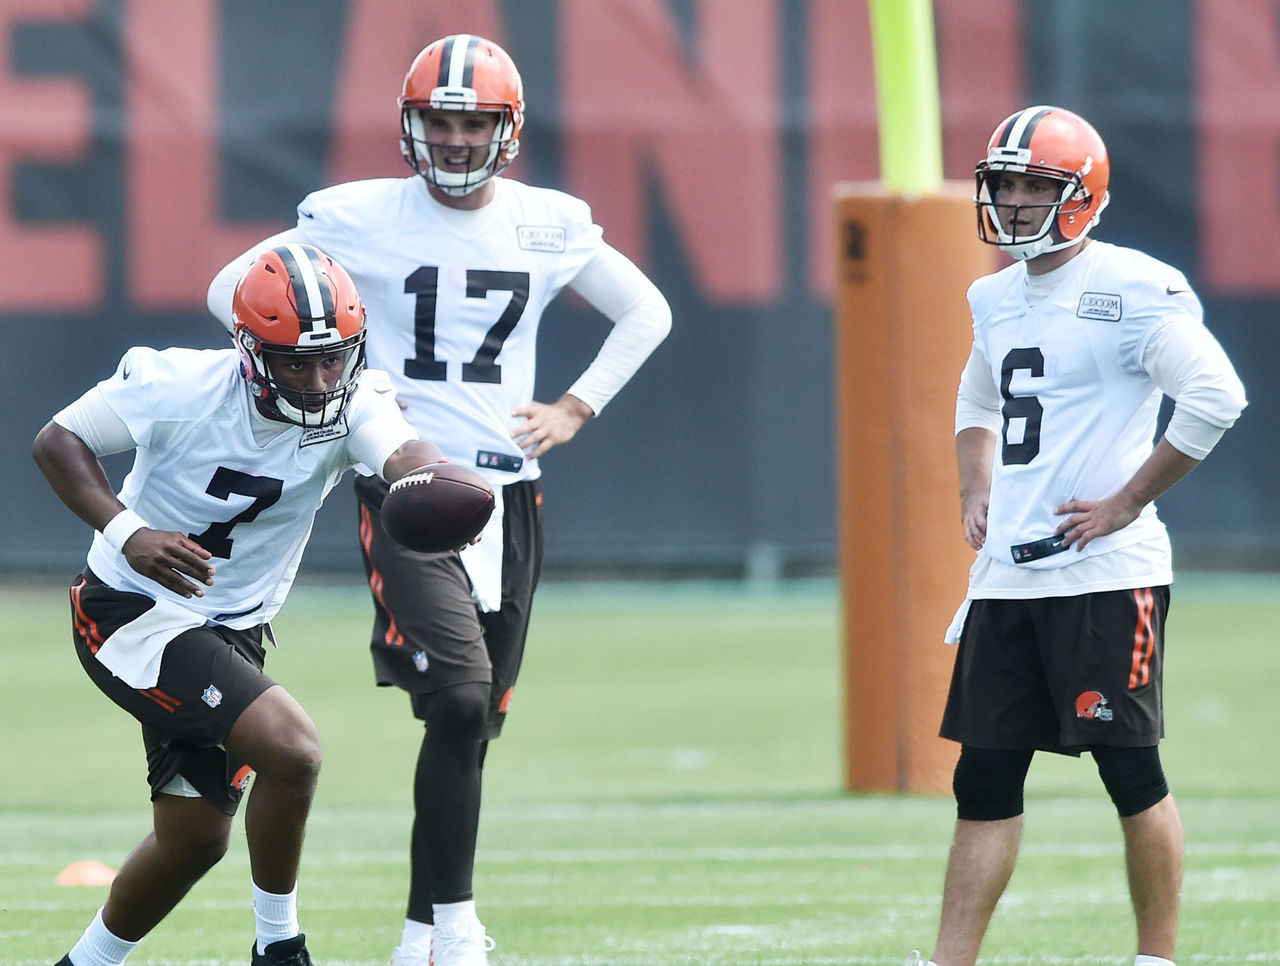 Cropped 2017 06 13t203006z 1161220054 nocid rtrmadp 3 nfl cleveland browns minicamp